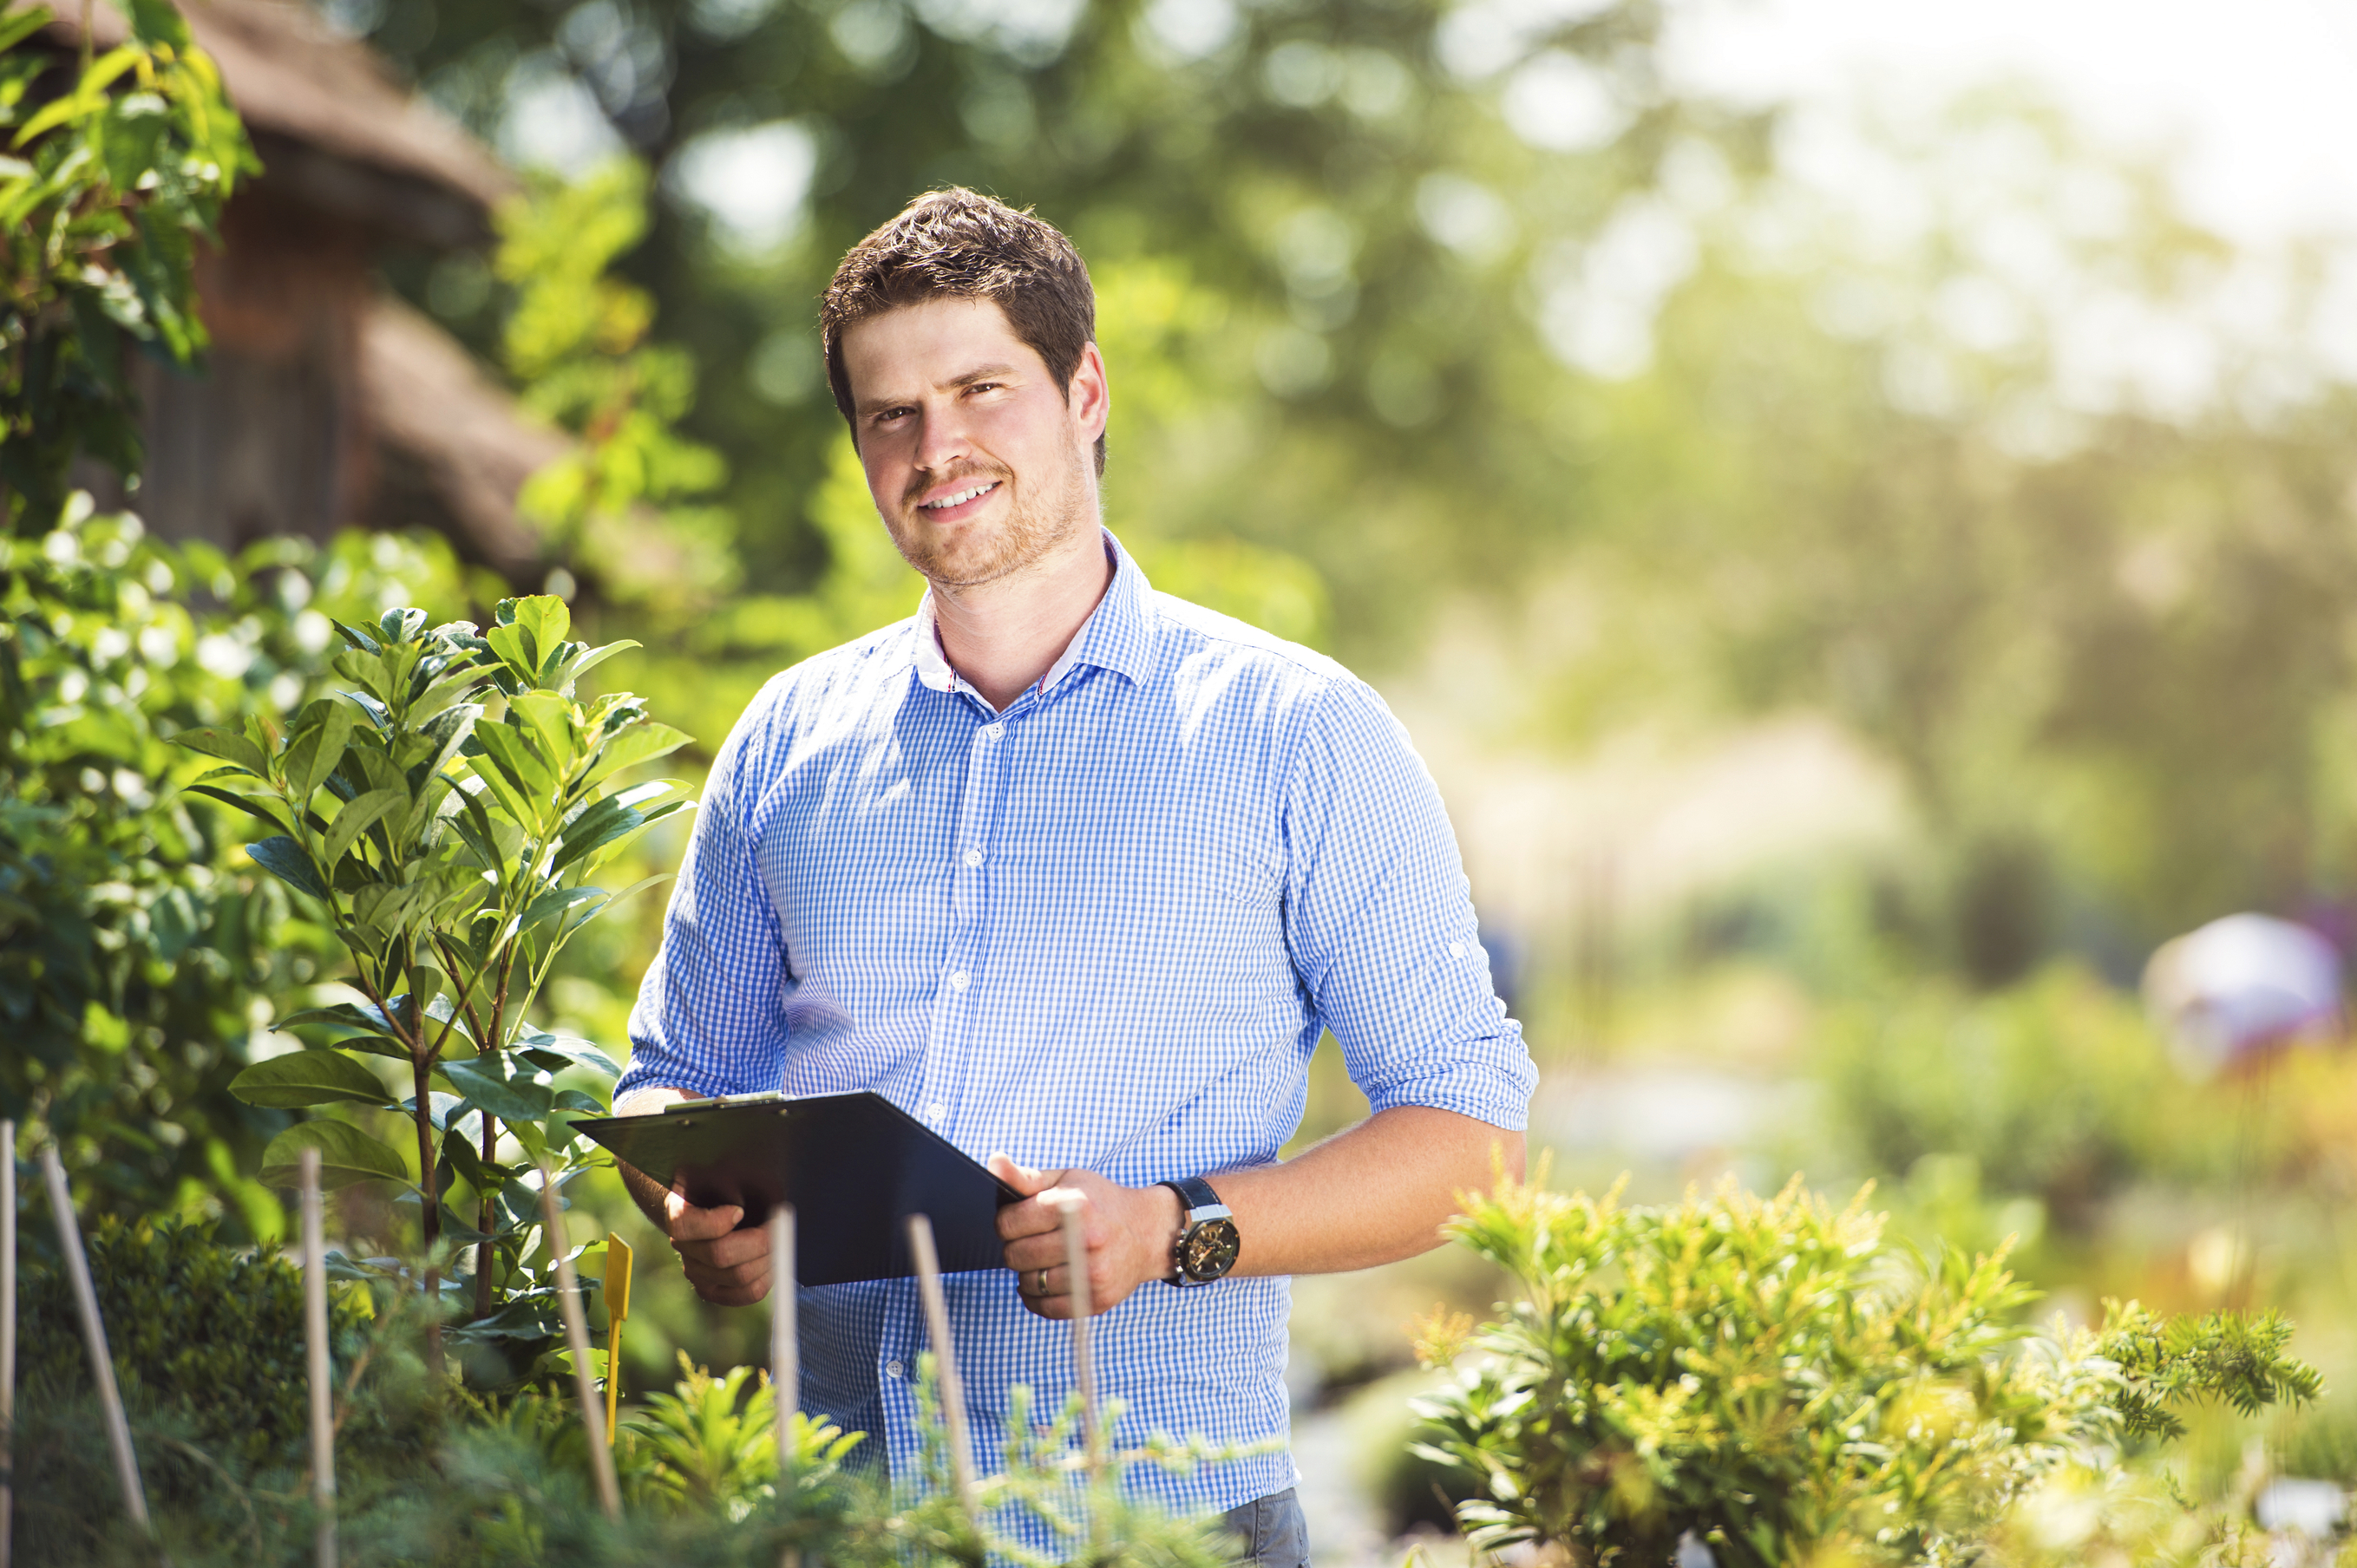 Gardener-holding-clipboard,-in-his-garden,-green-sunny-nature-000088137377_Large.jpg